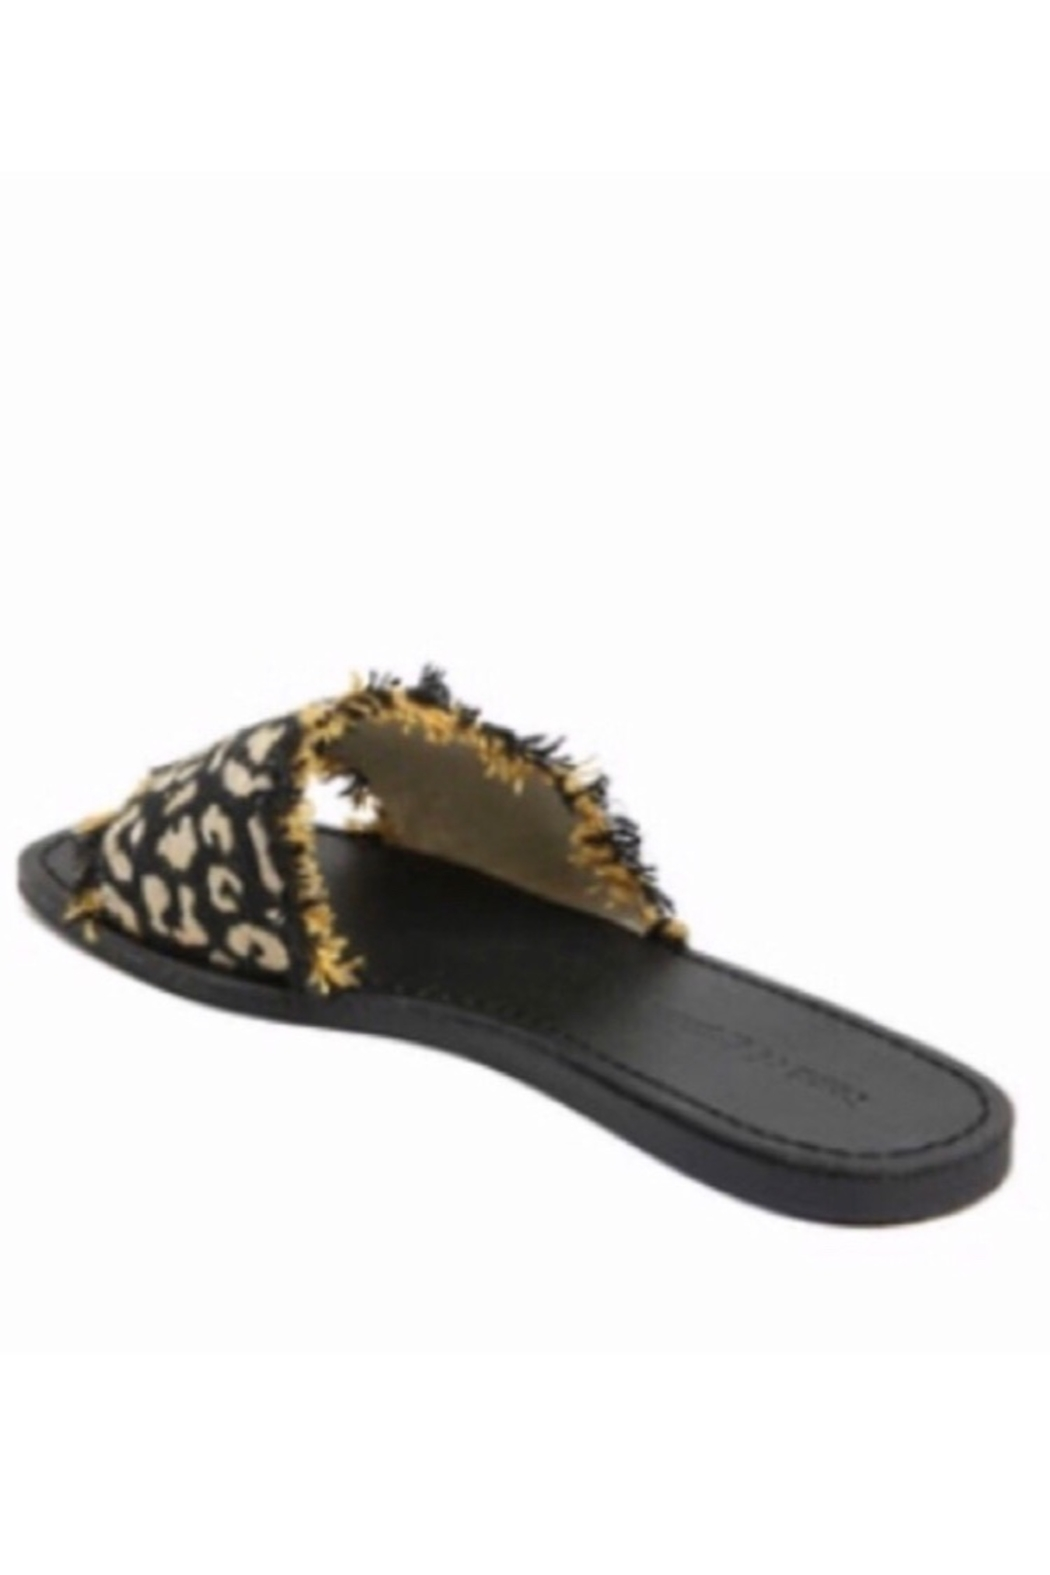 Band Of Gypsies Marina Leopard Woven Canvas Slide Sandal - Black - Front Full Image